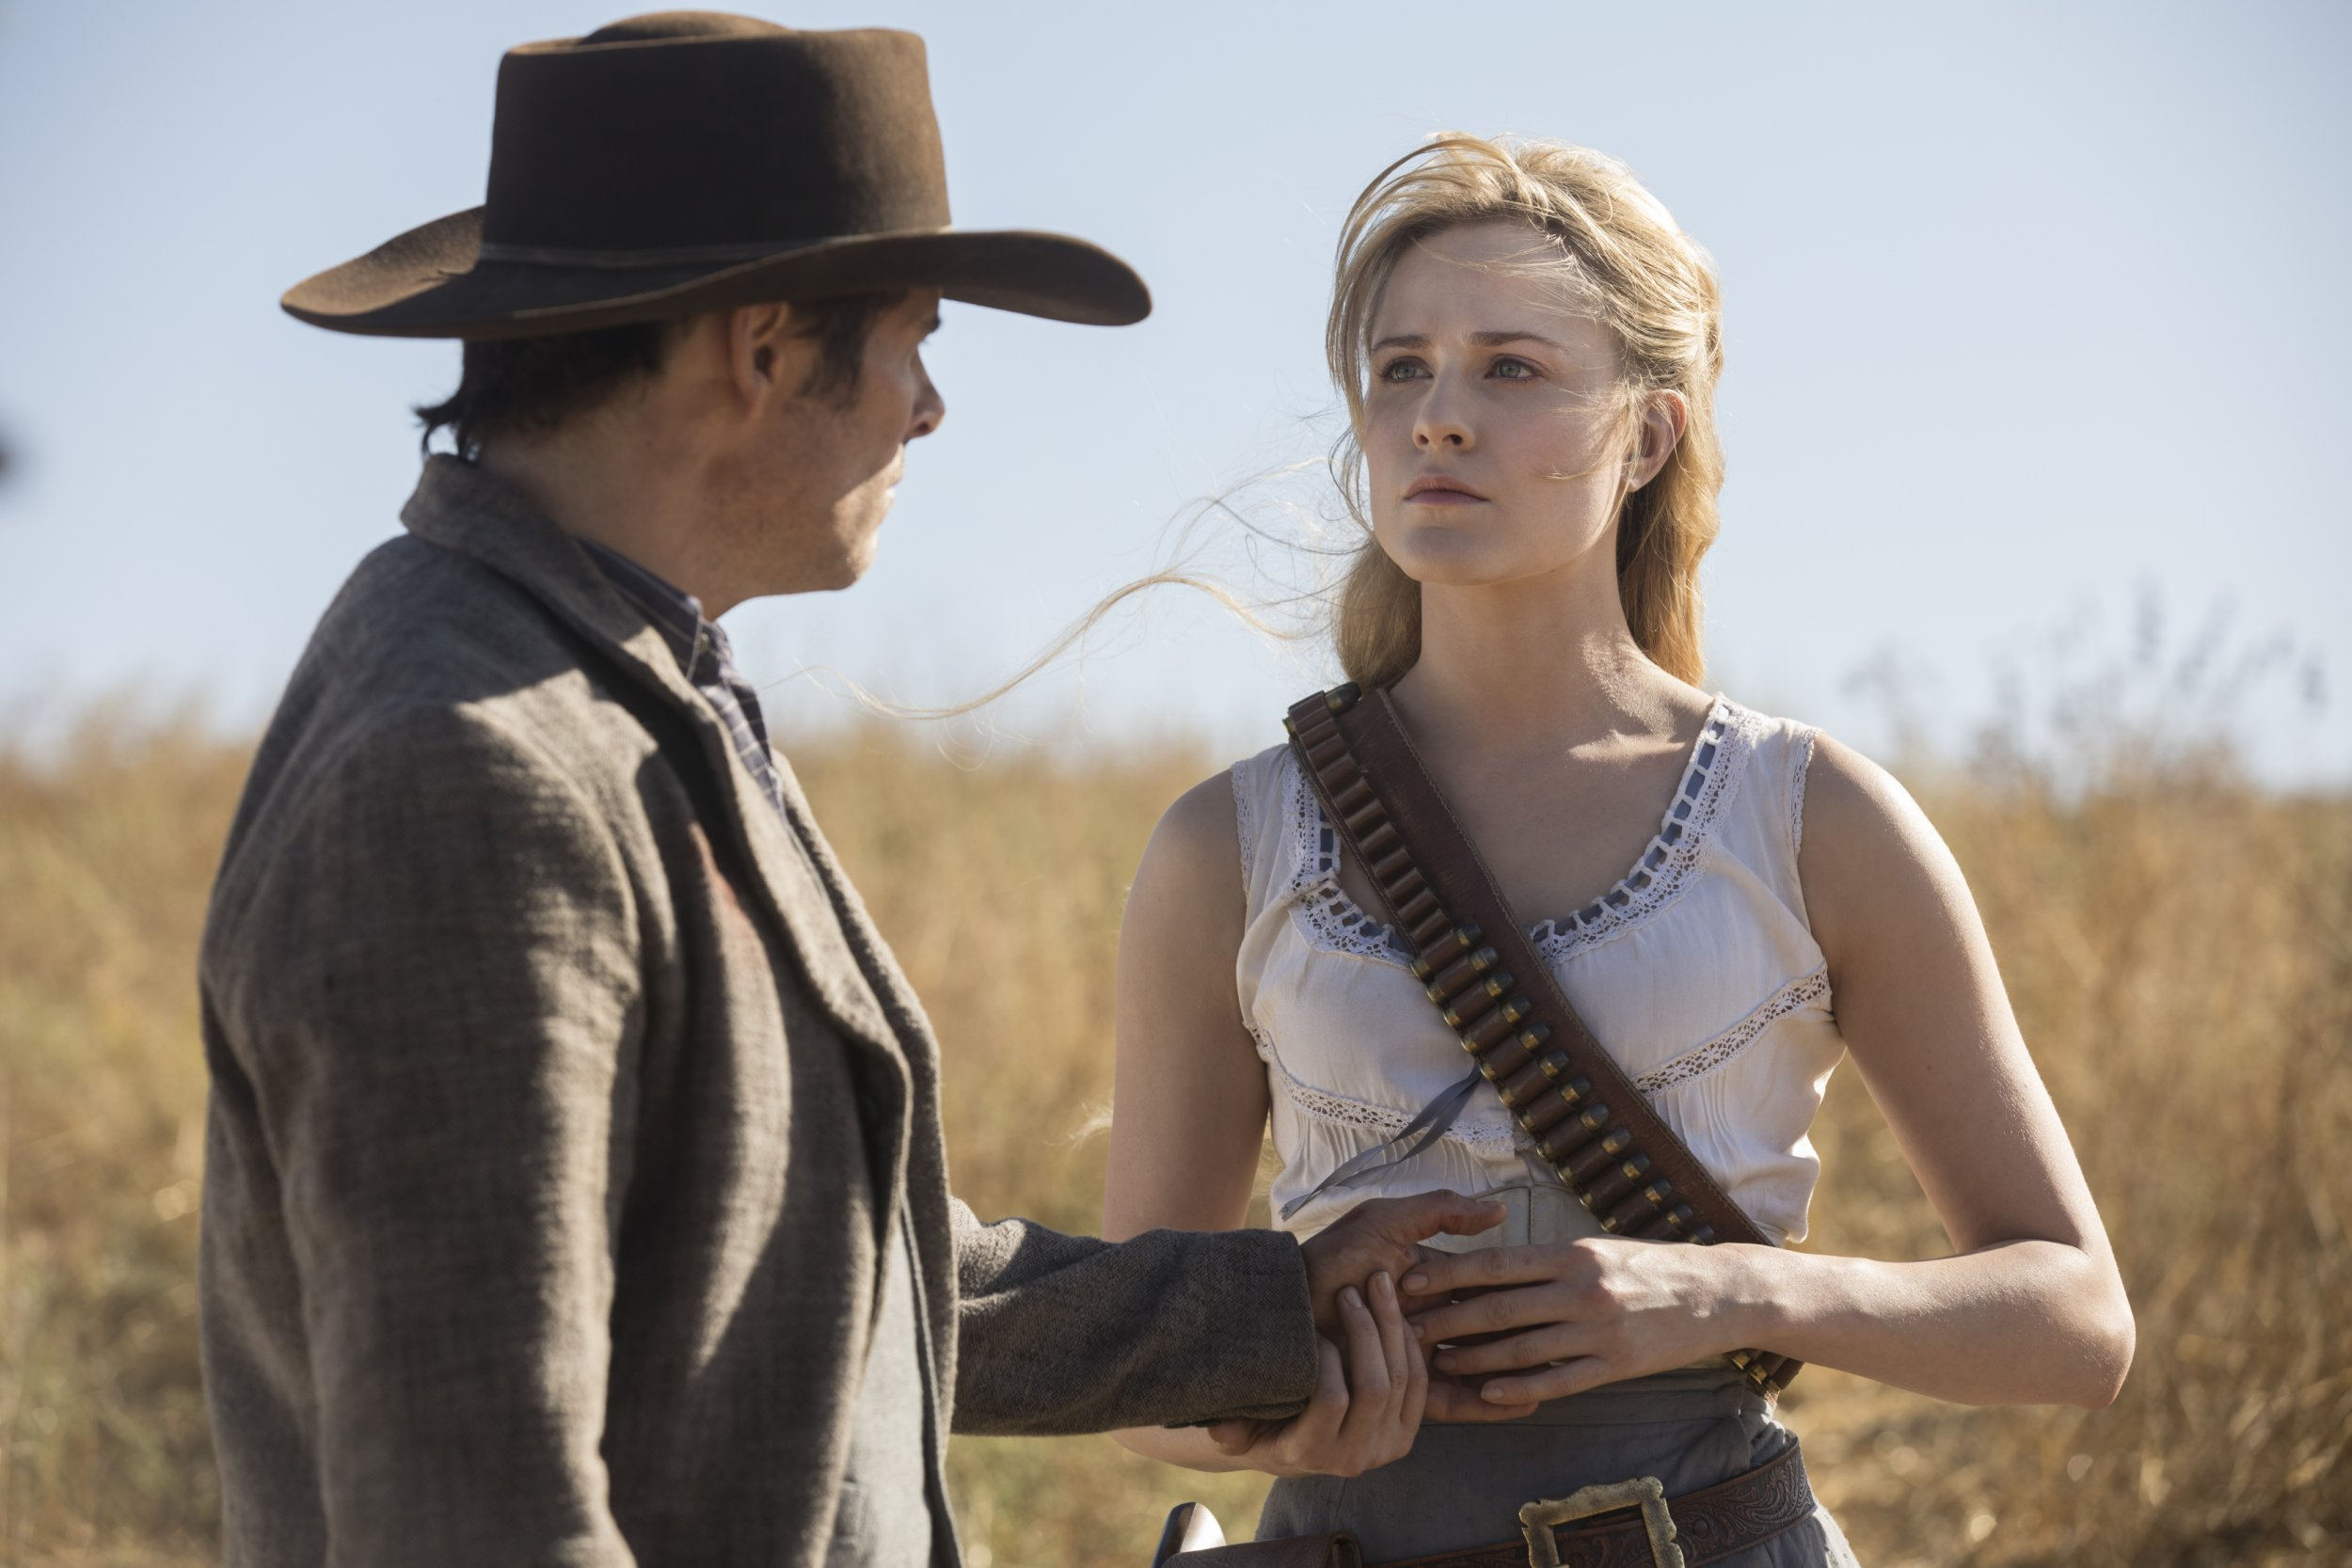 Westworld boss addresses season 2 backlash: 'It's not for casual viewers'